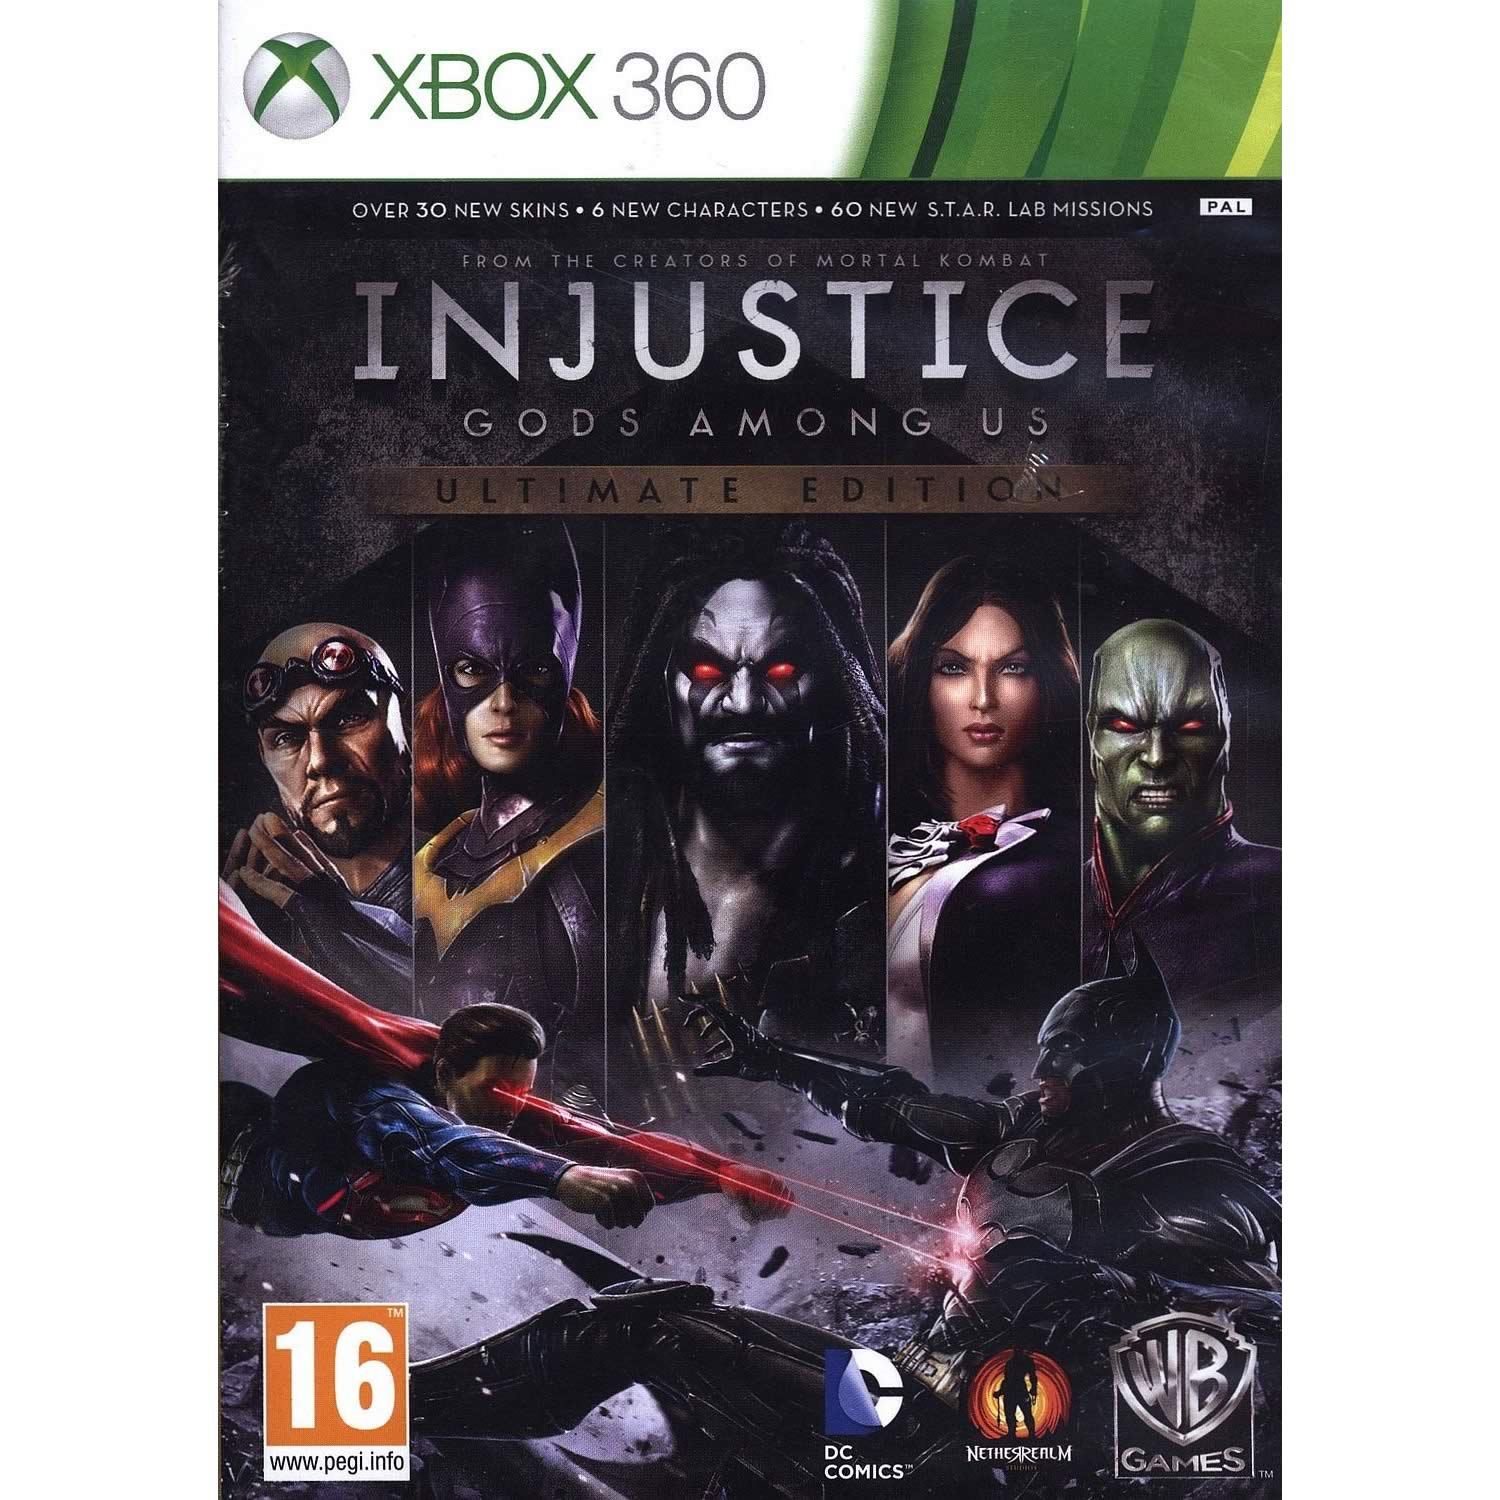 INJUSTICE GODS AMONG US - ULTIMATE EDITION (XBOX 360)